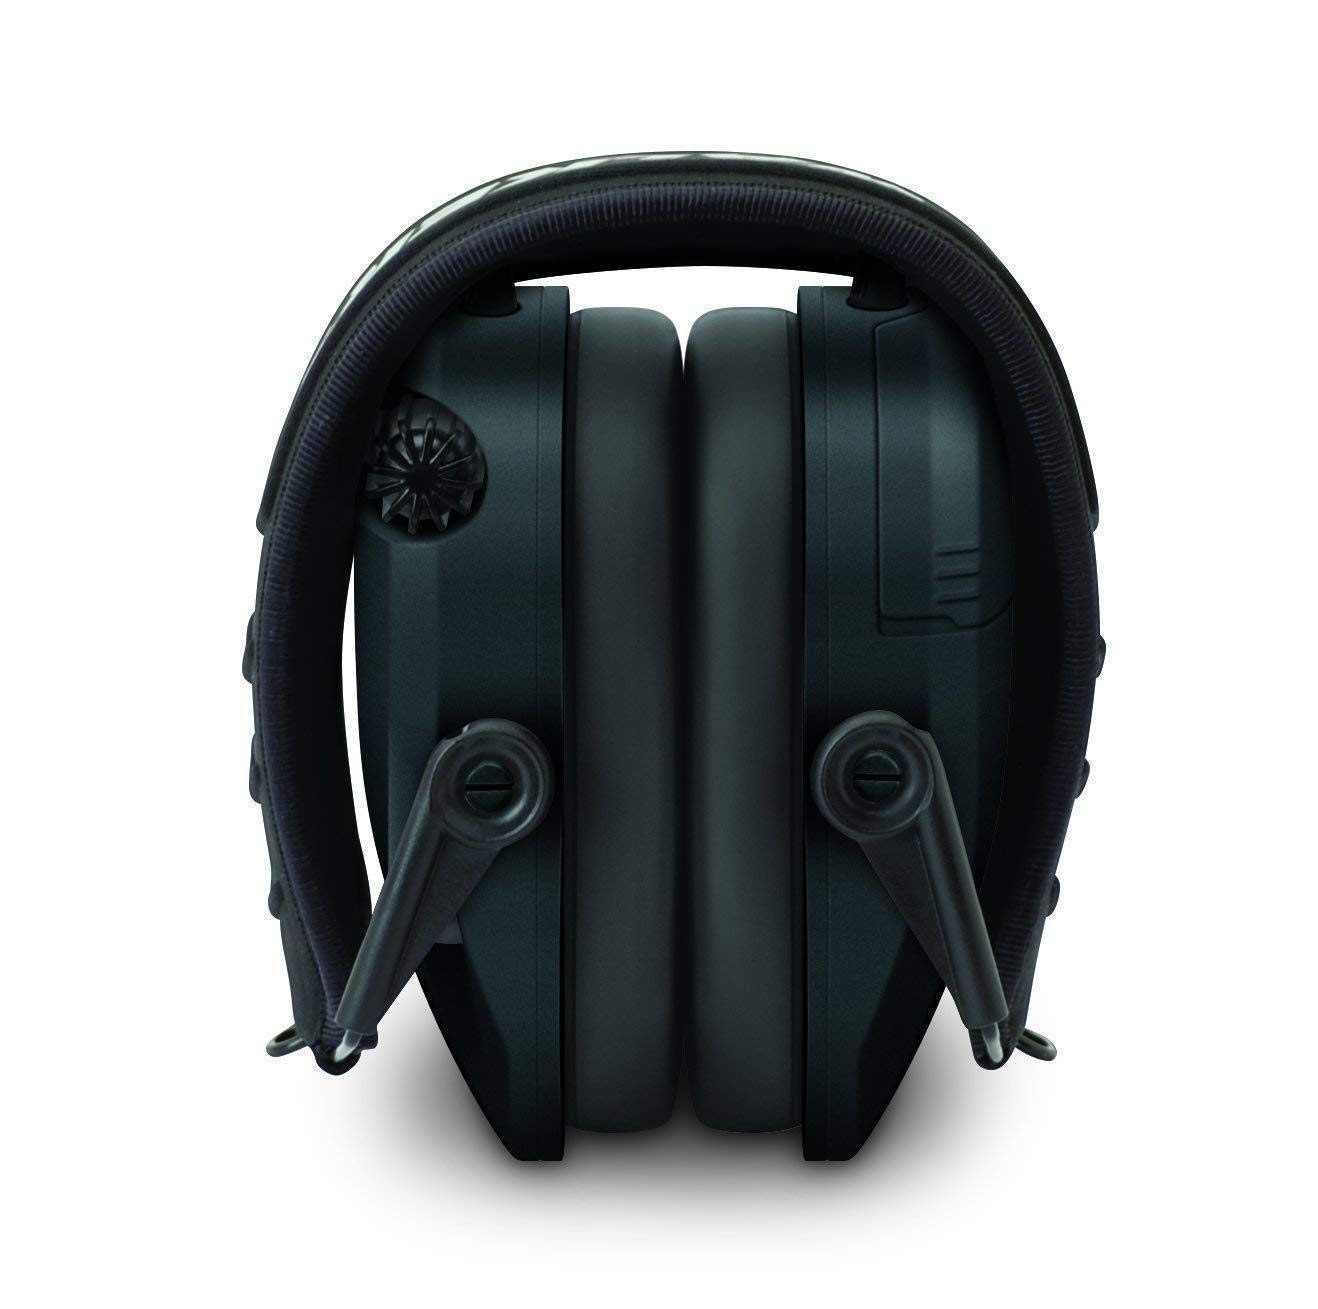 Walkers Razor Slim Electronic Hearing Protection Muffs with Sound Amplification and Suppression and Shooting Glasses Kit by Walkers (Image #5)